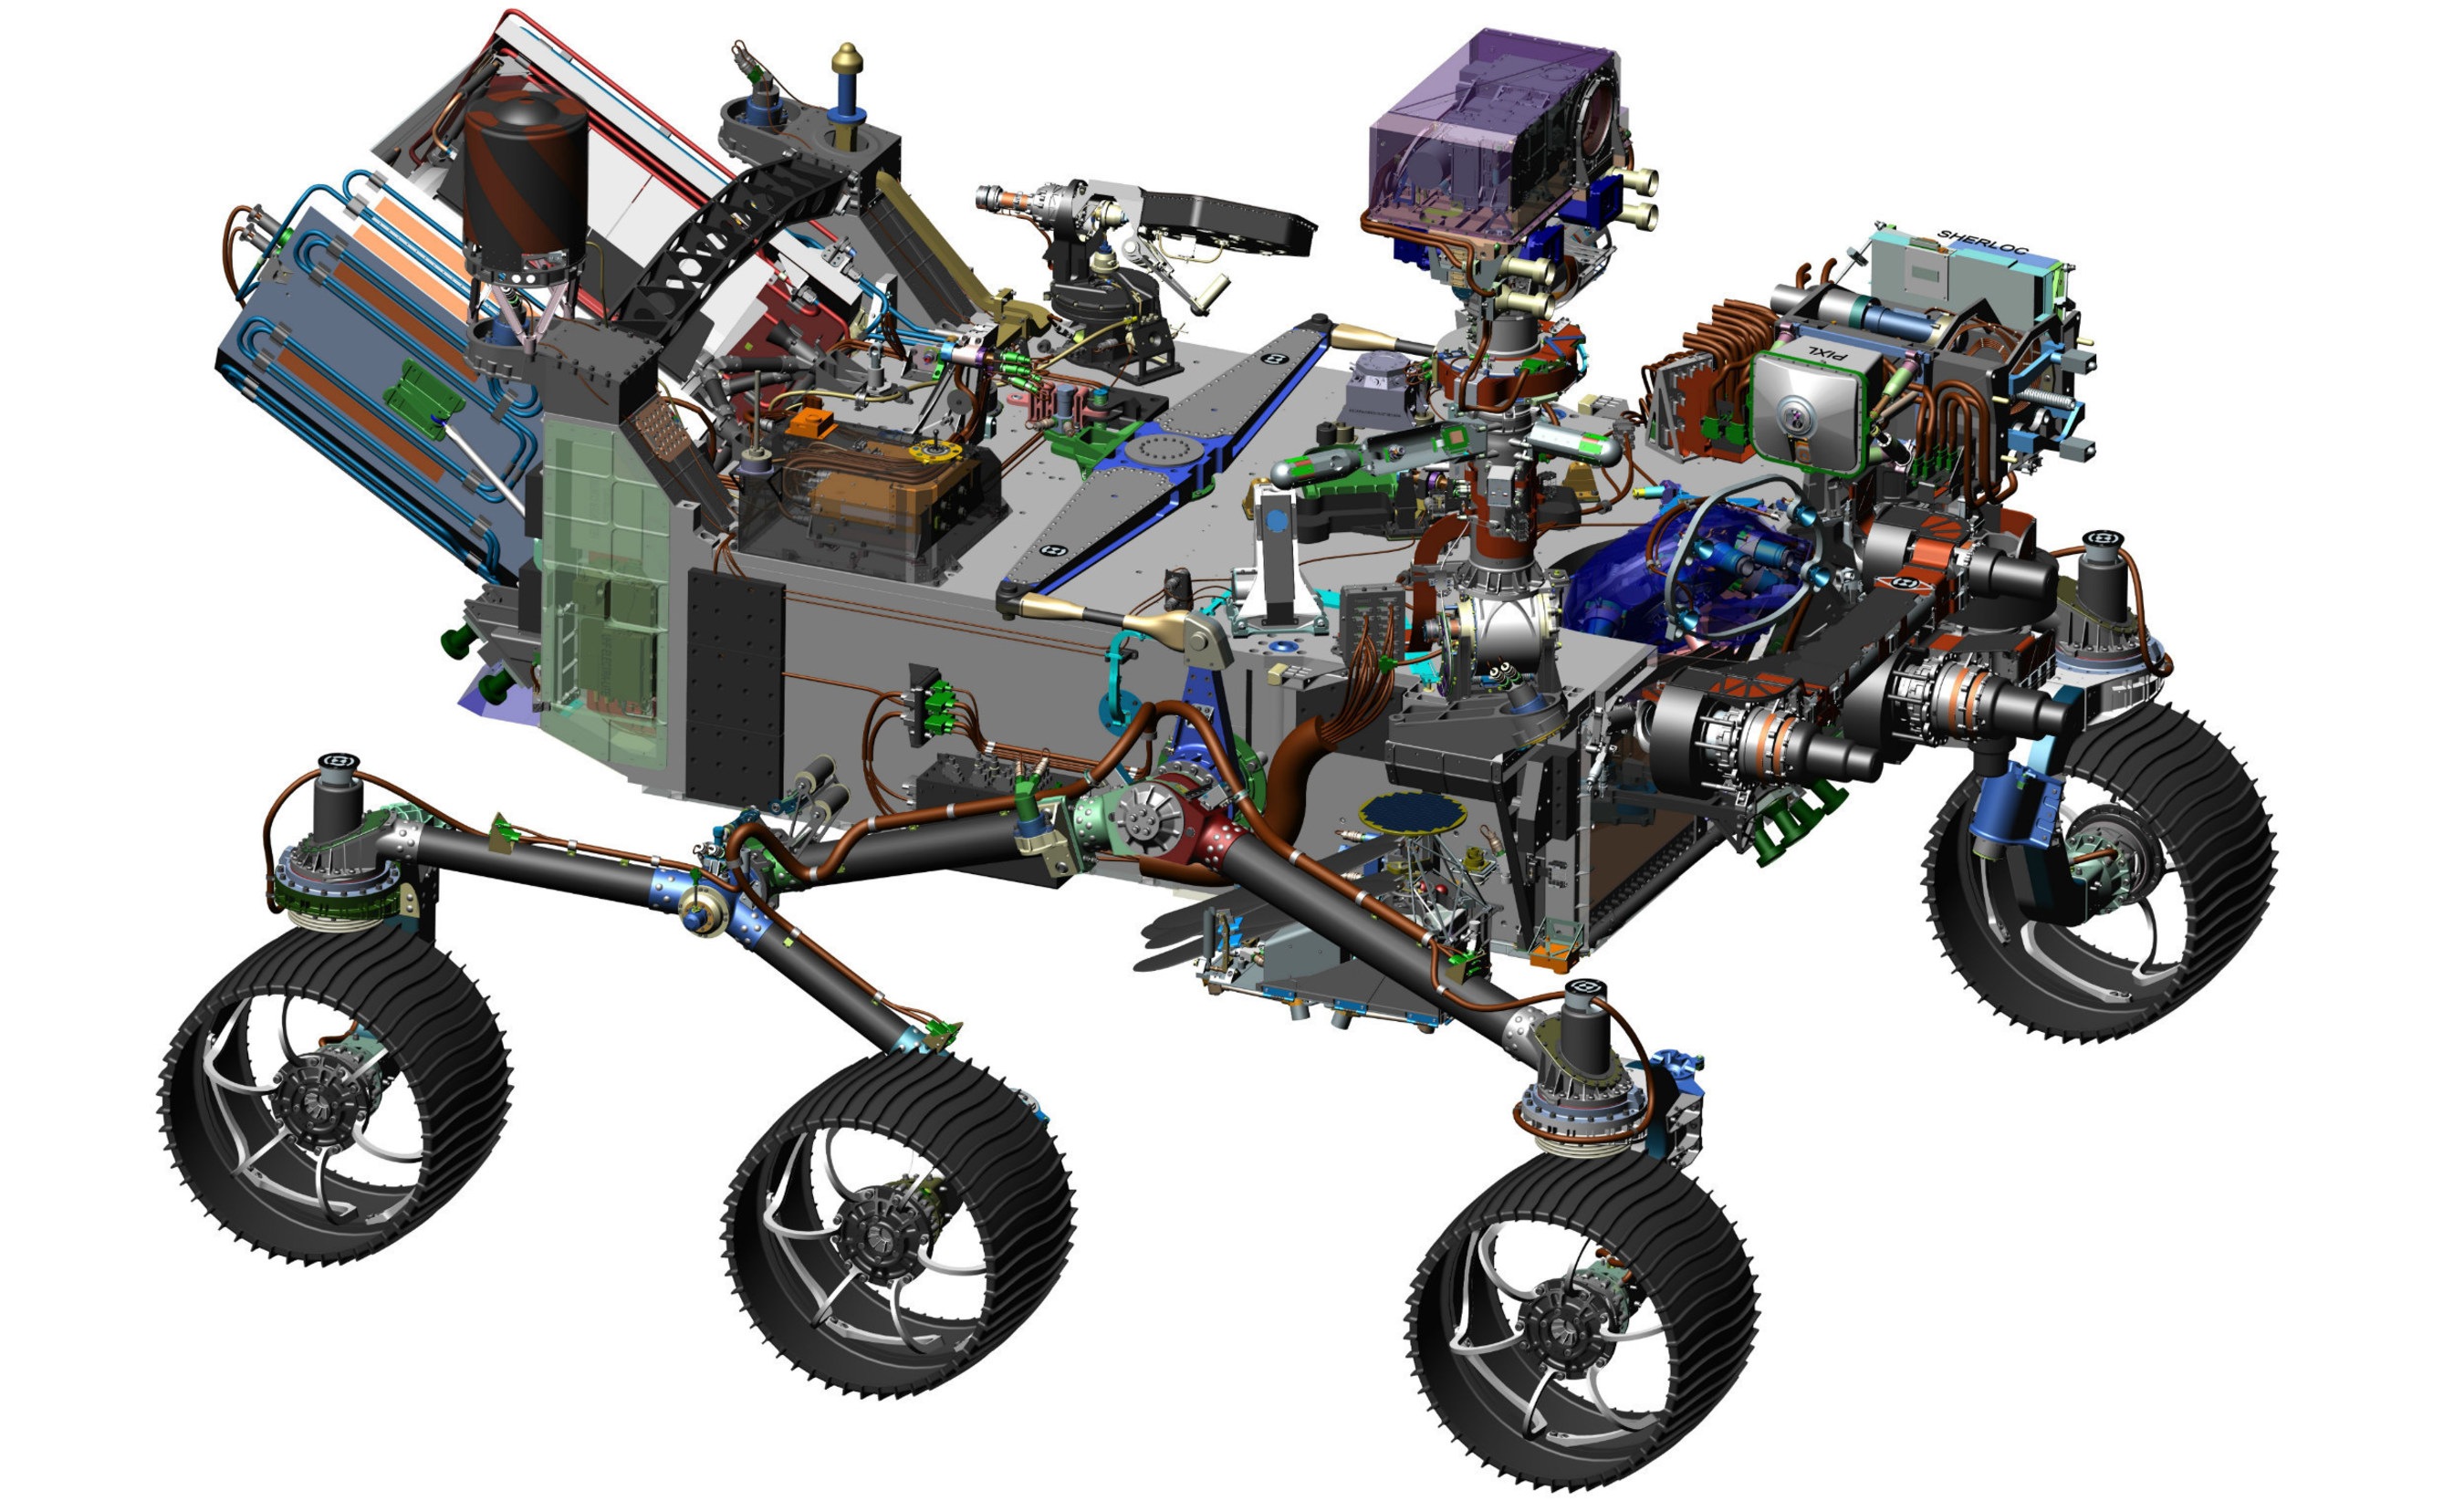 This image is from computer-assisted-design work on the Mars 2020 rover. The design leverages many successful features of NASA's Curiosity rover, which landed on Mars in 2012, but also adds new science instruments and a sampling system to carry out new goals for the 2020 mission.